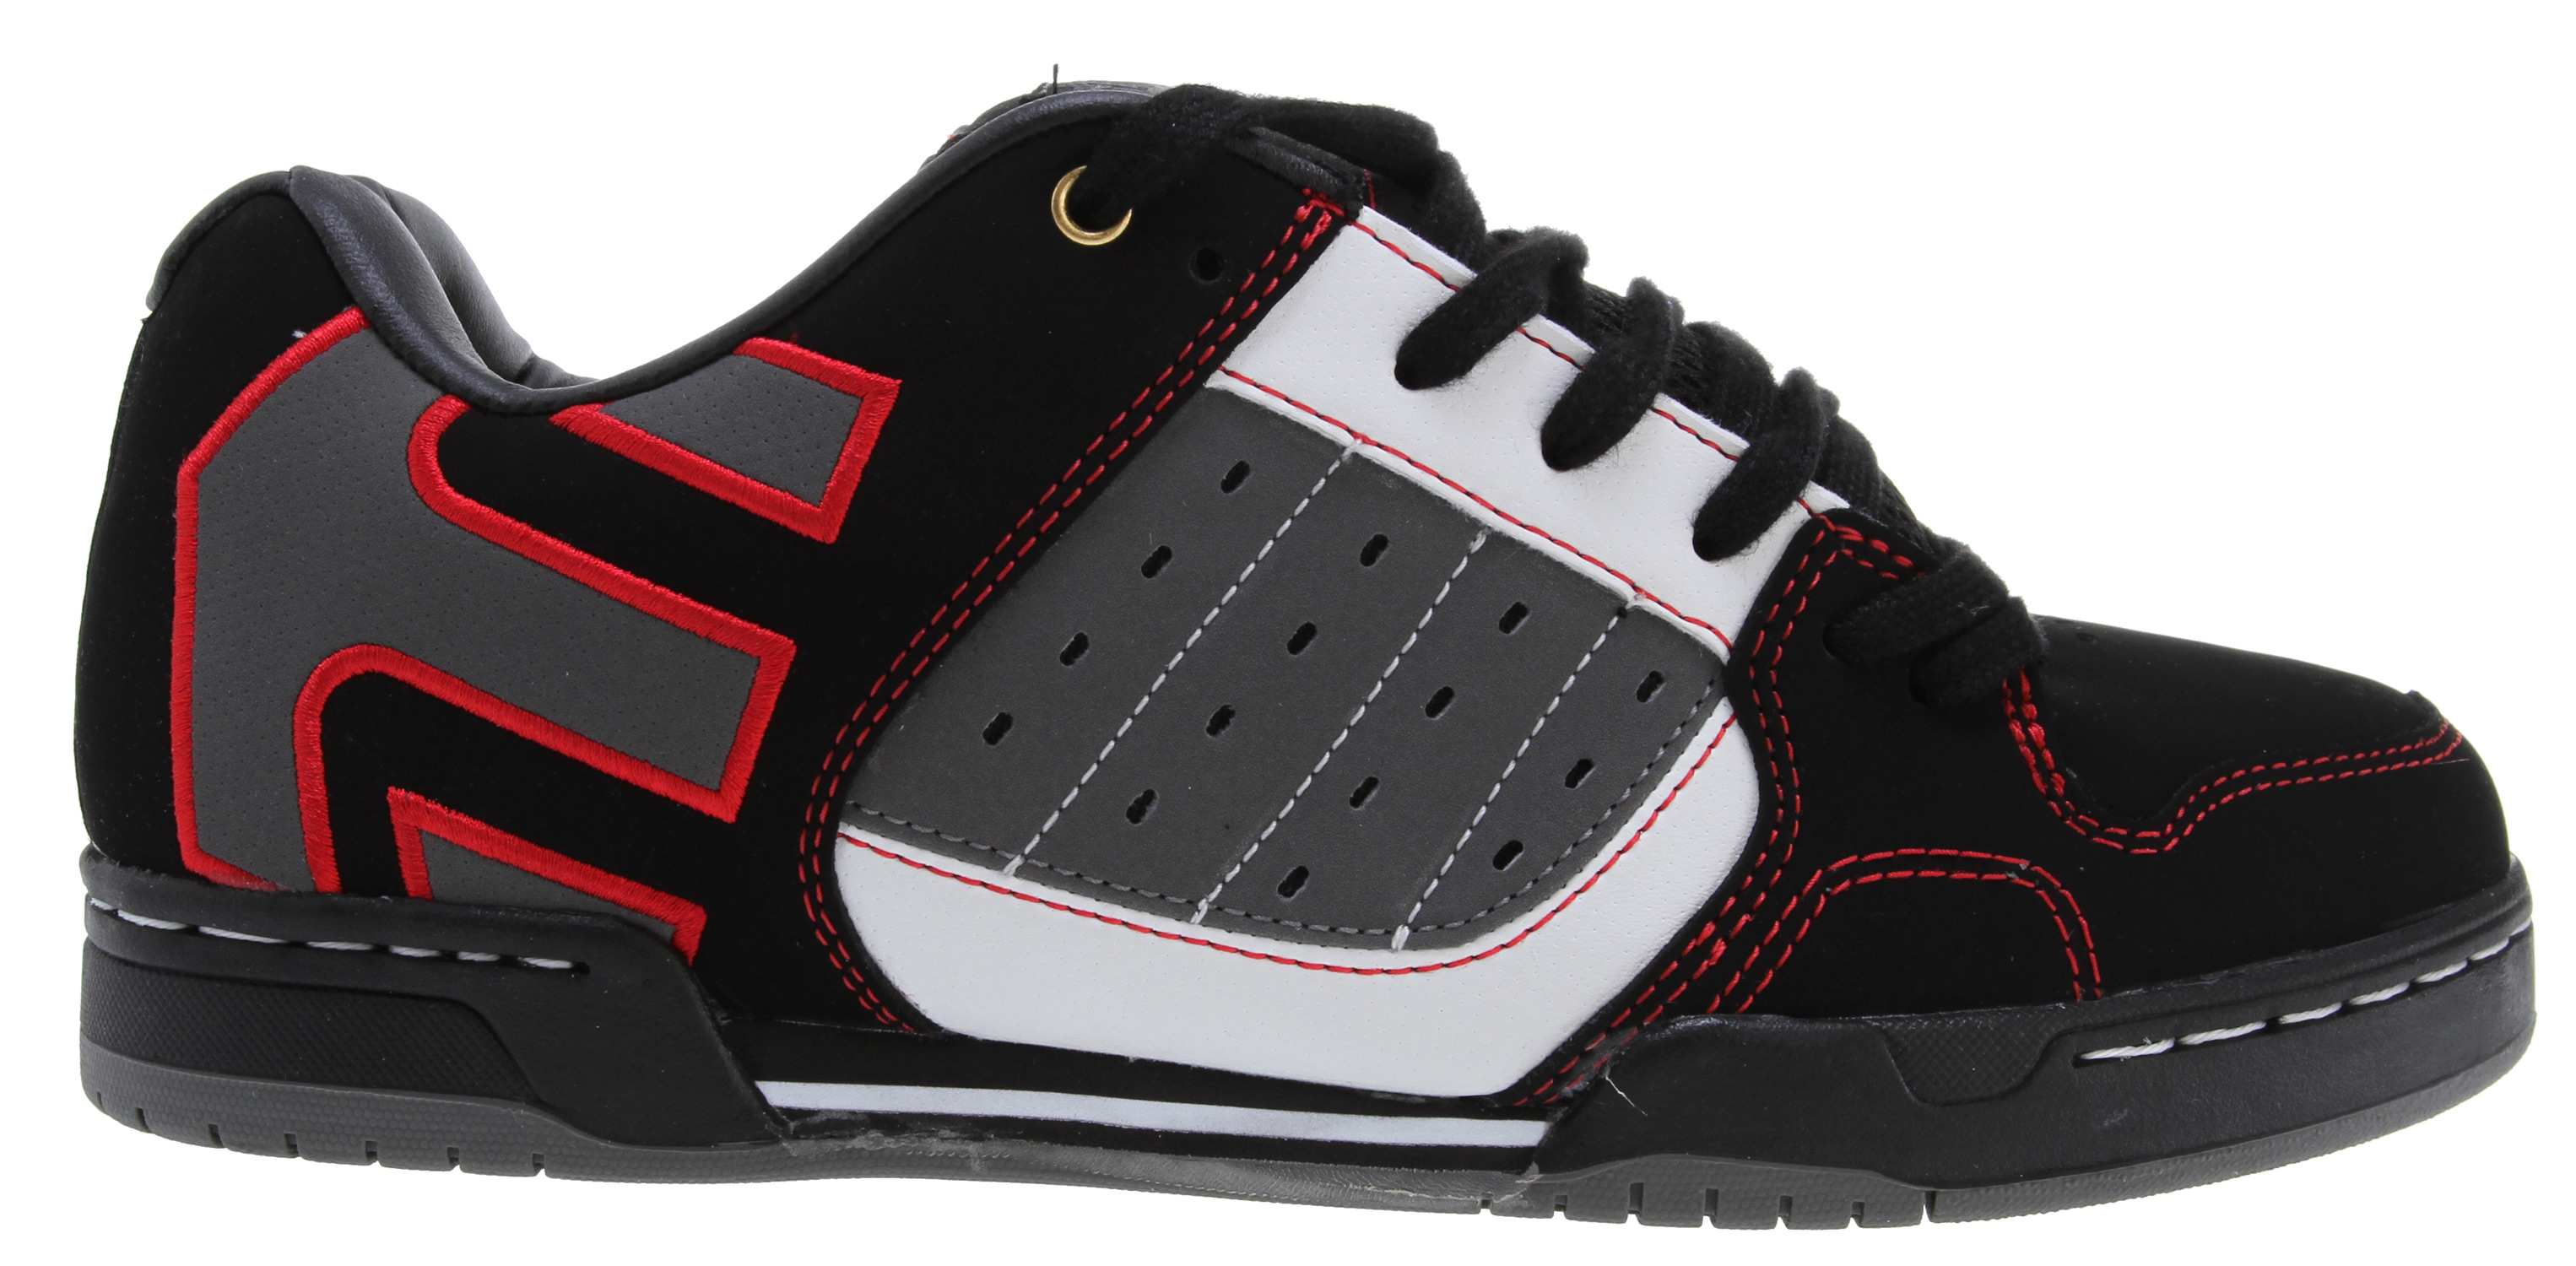 Skateboard Key Features of the Etnies Piston LX Skate Shoes: Trademark etnies Arrow logo Padded tongue and collar STI Foam Lite level 1 footbed New 300 NBS double cup rubber outsole with exposed EVA midsole - $52.95